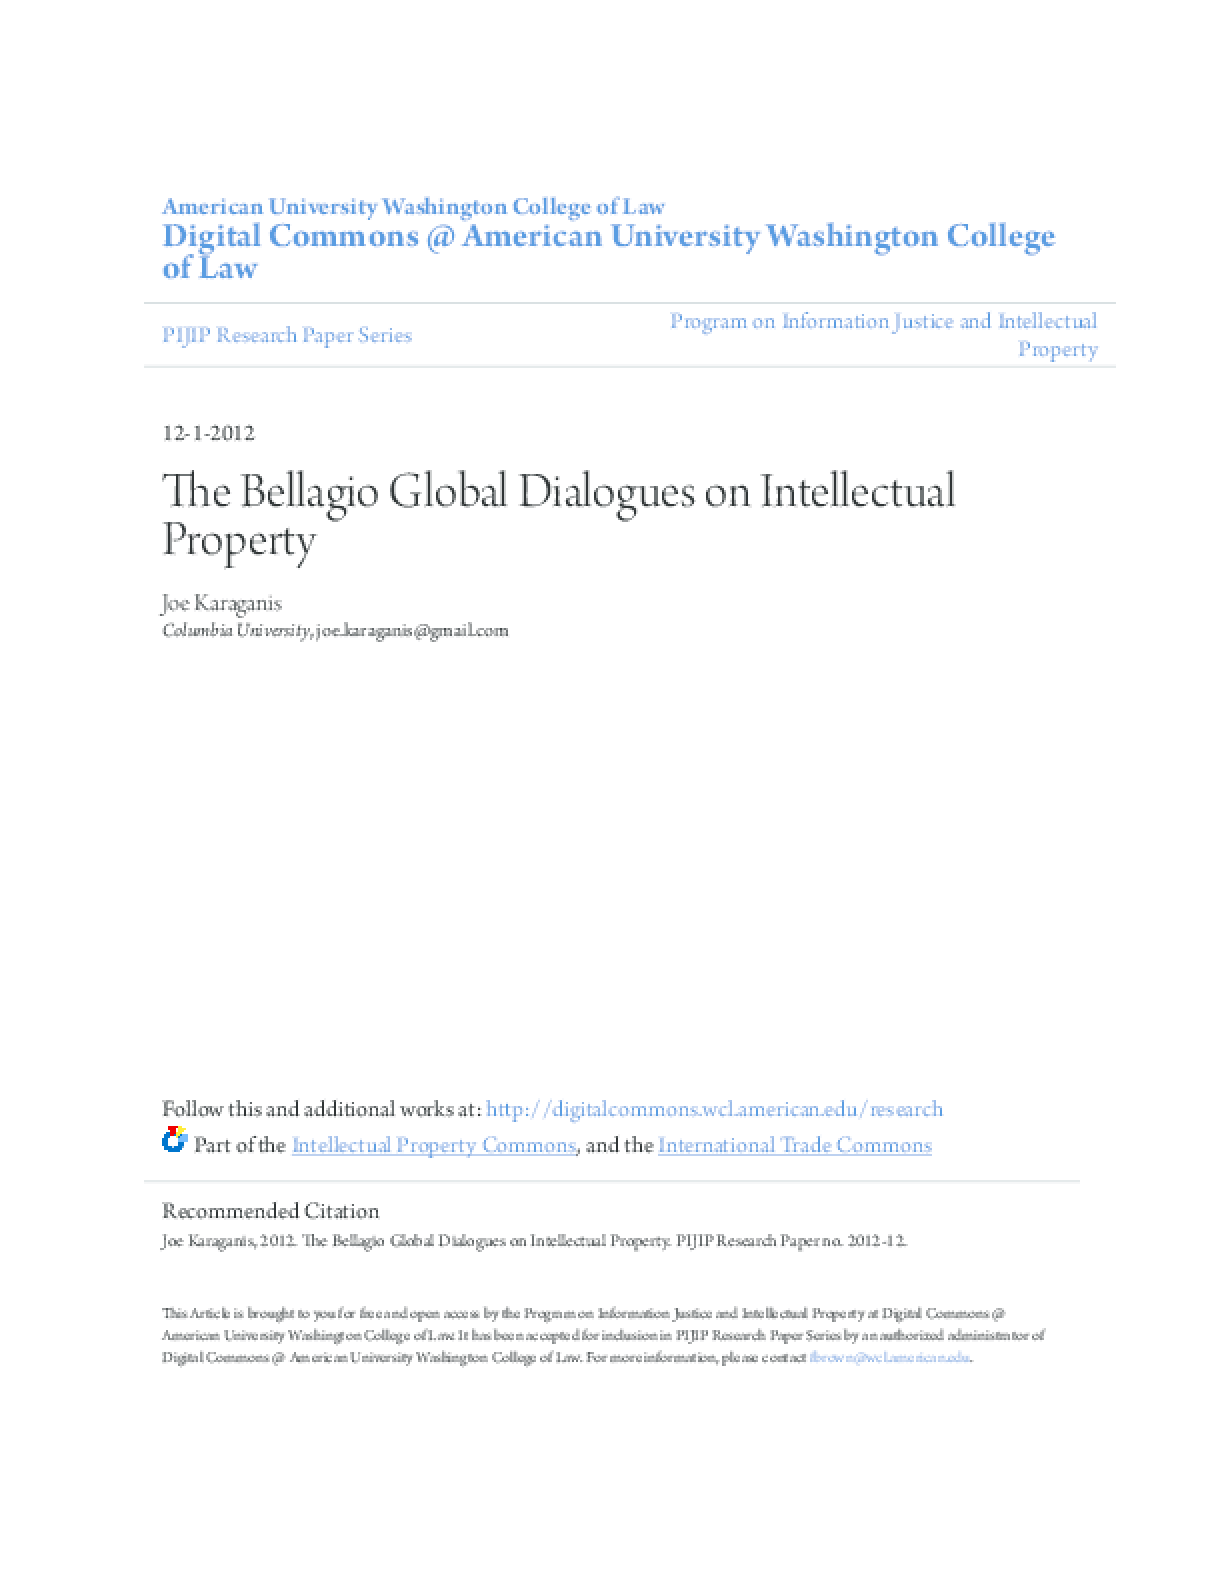 The Bellagio Global Dialogues on Intellectual Property